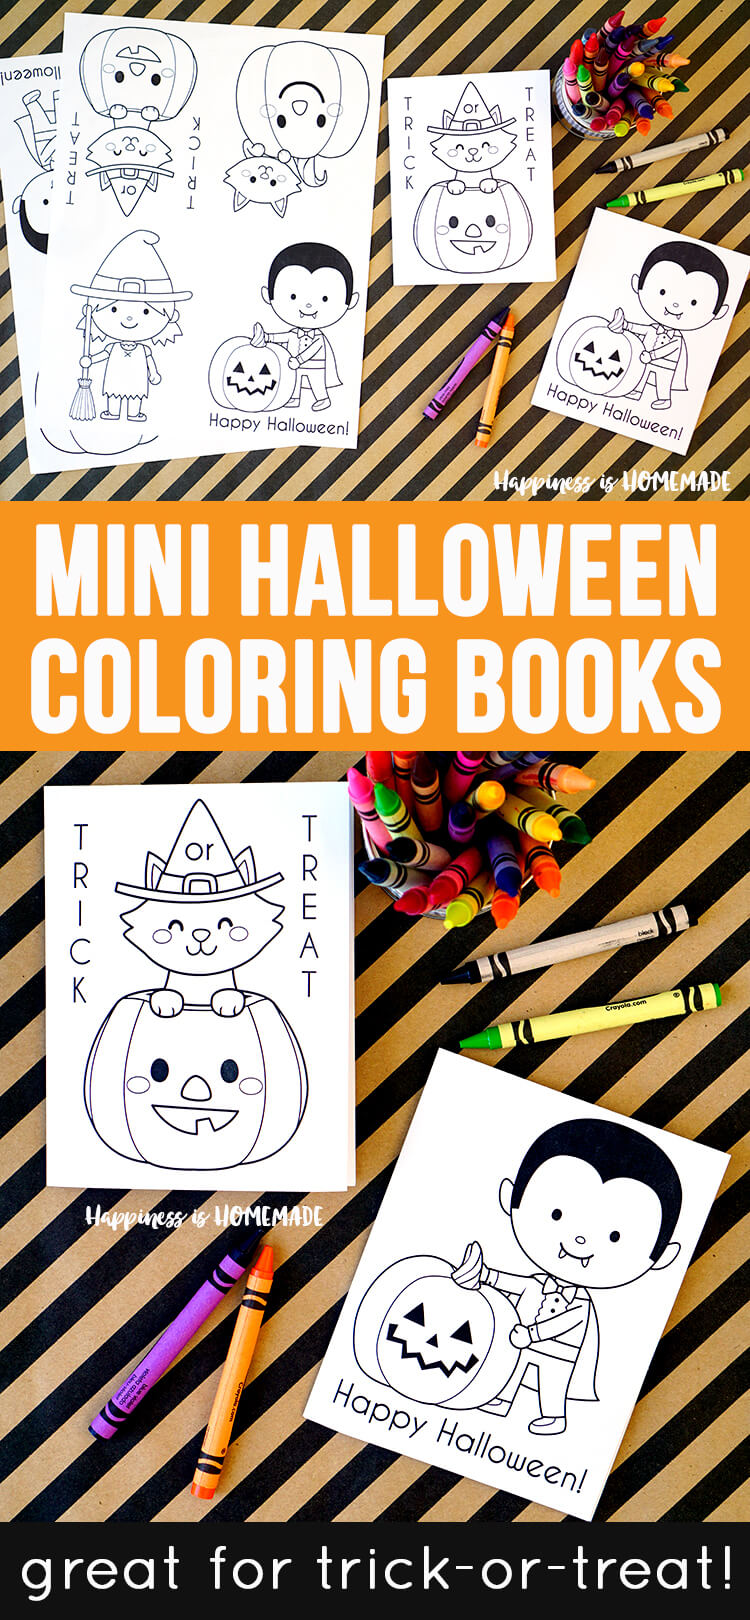 mini books coloring pages - photo#27